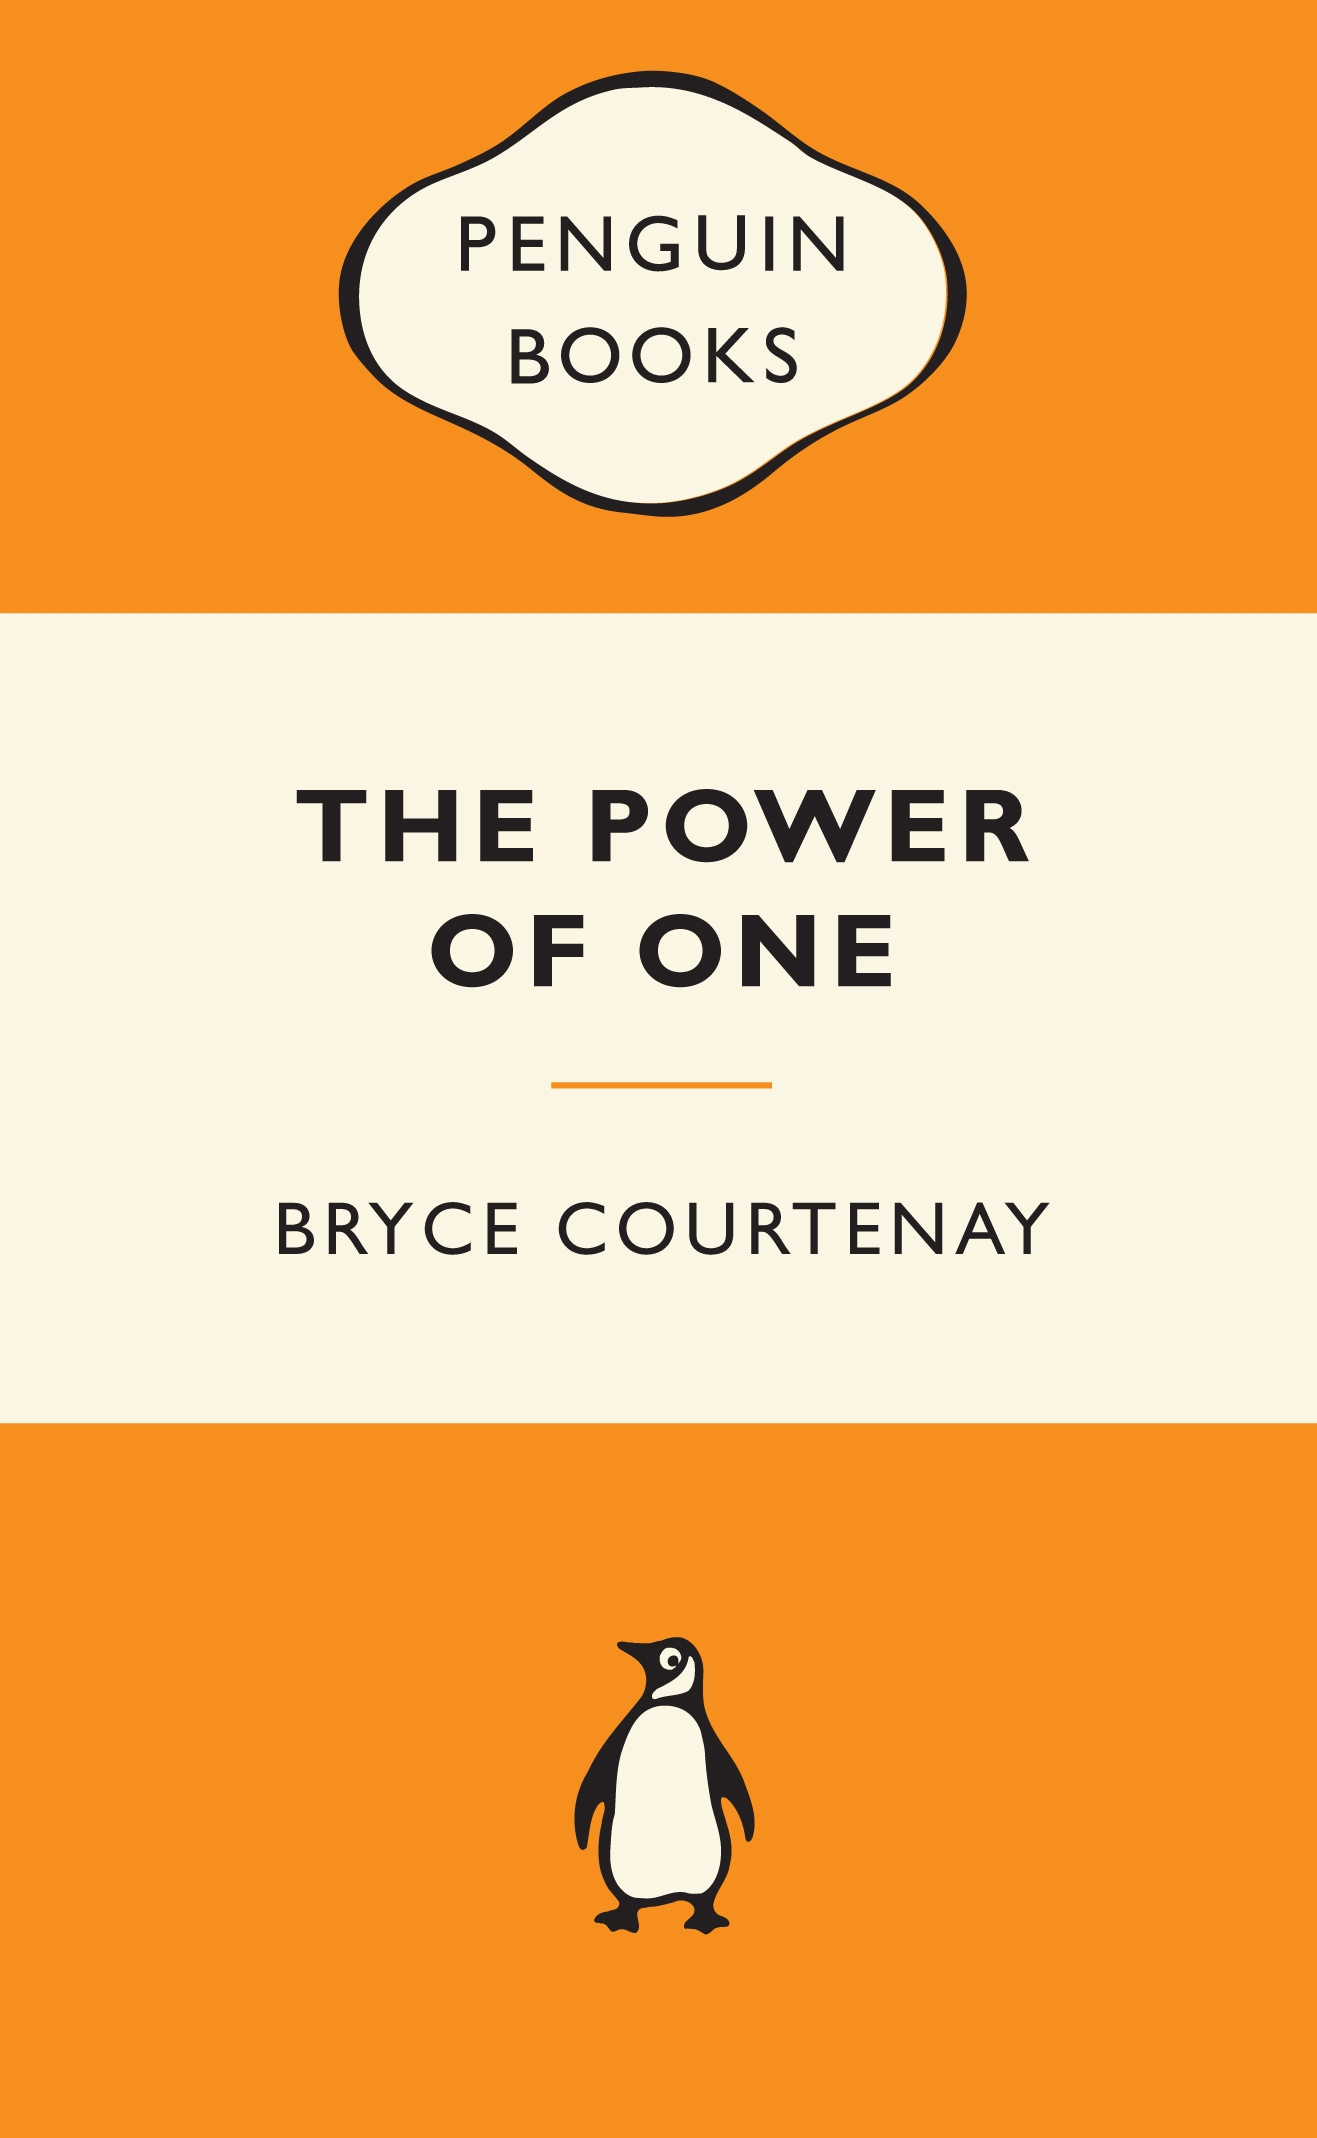 the power of one bryce courtenay Tandia: a continuation of 'the power of one' by courtenay, bryce and a great selection of similar used, new and collectible books available now at abebookscom.